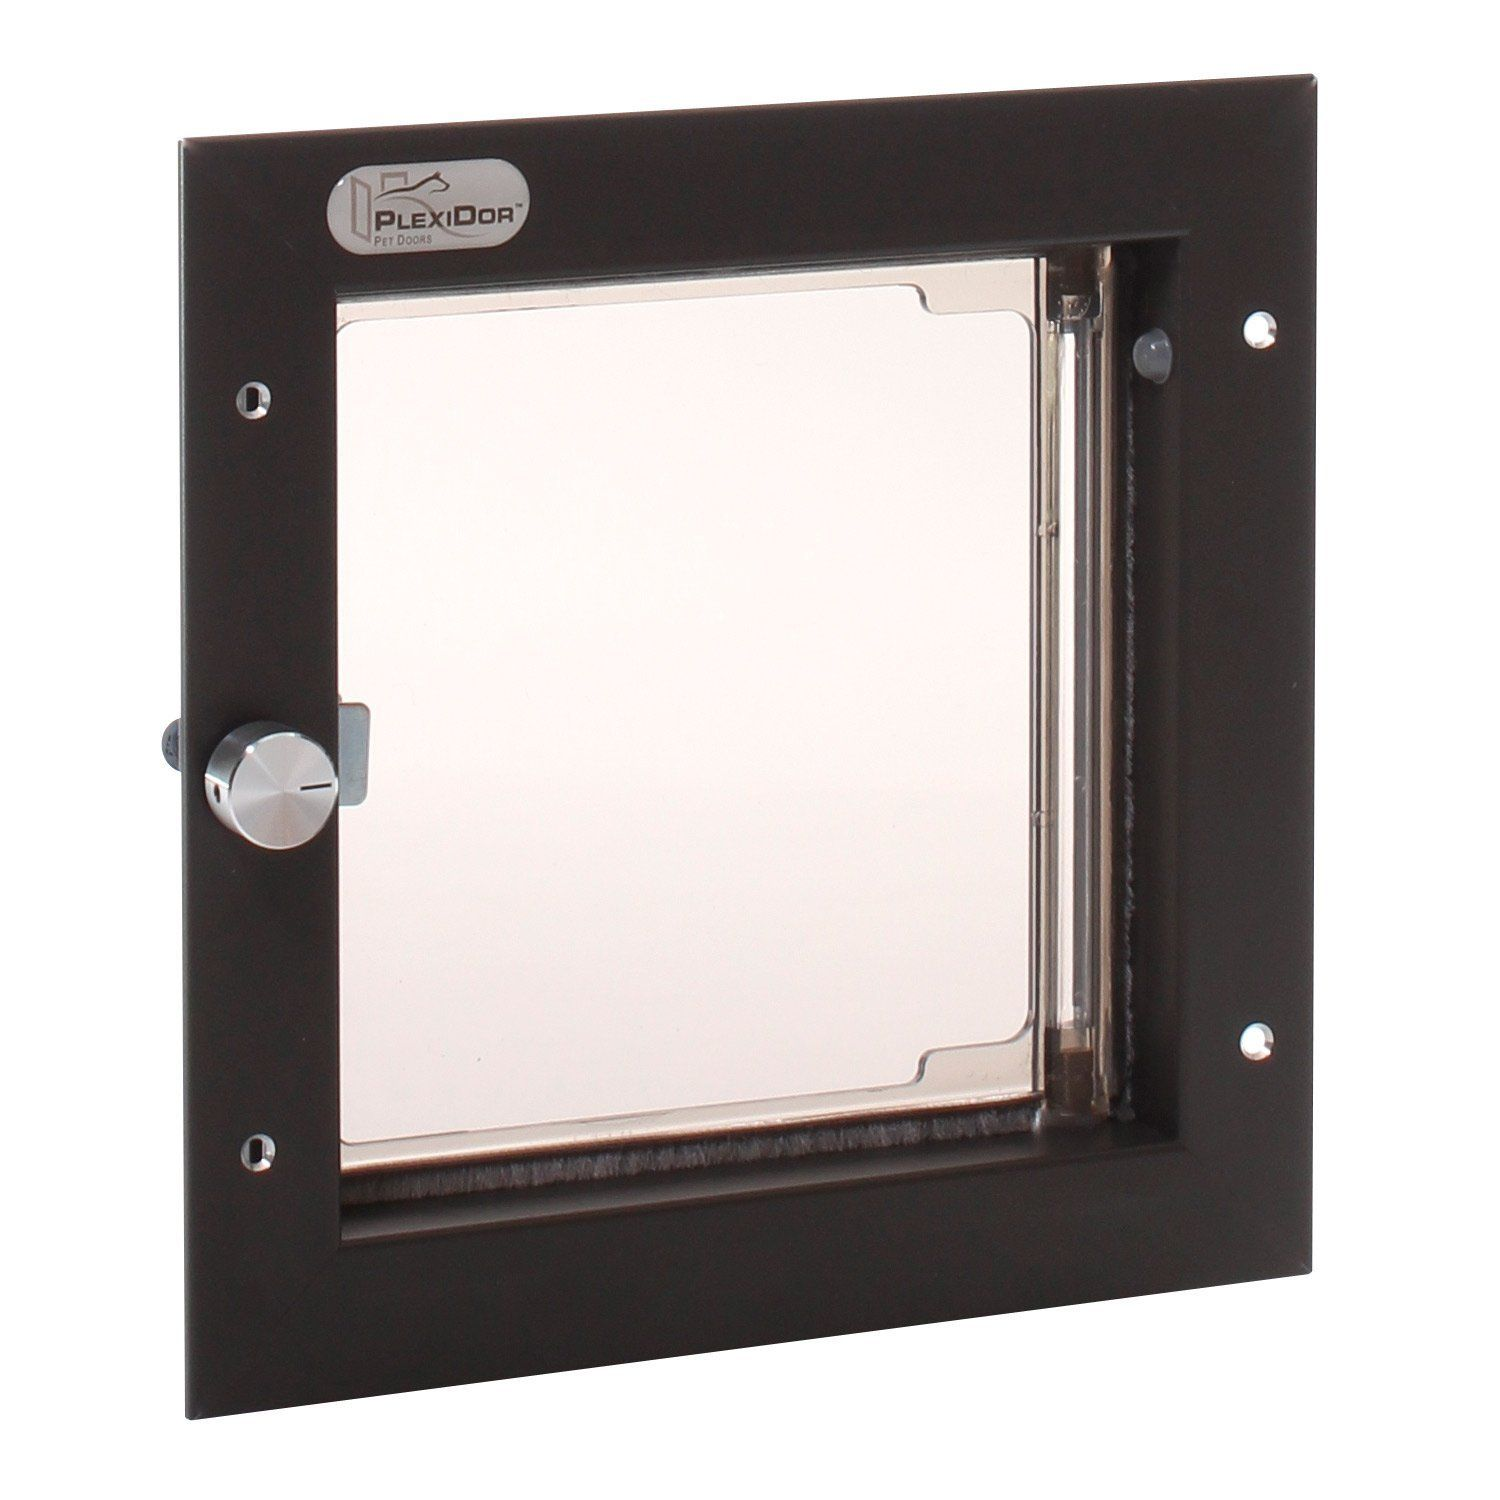 PlexiDor Performance cat Doors Small Bronze Wall Mount